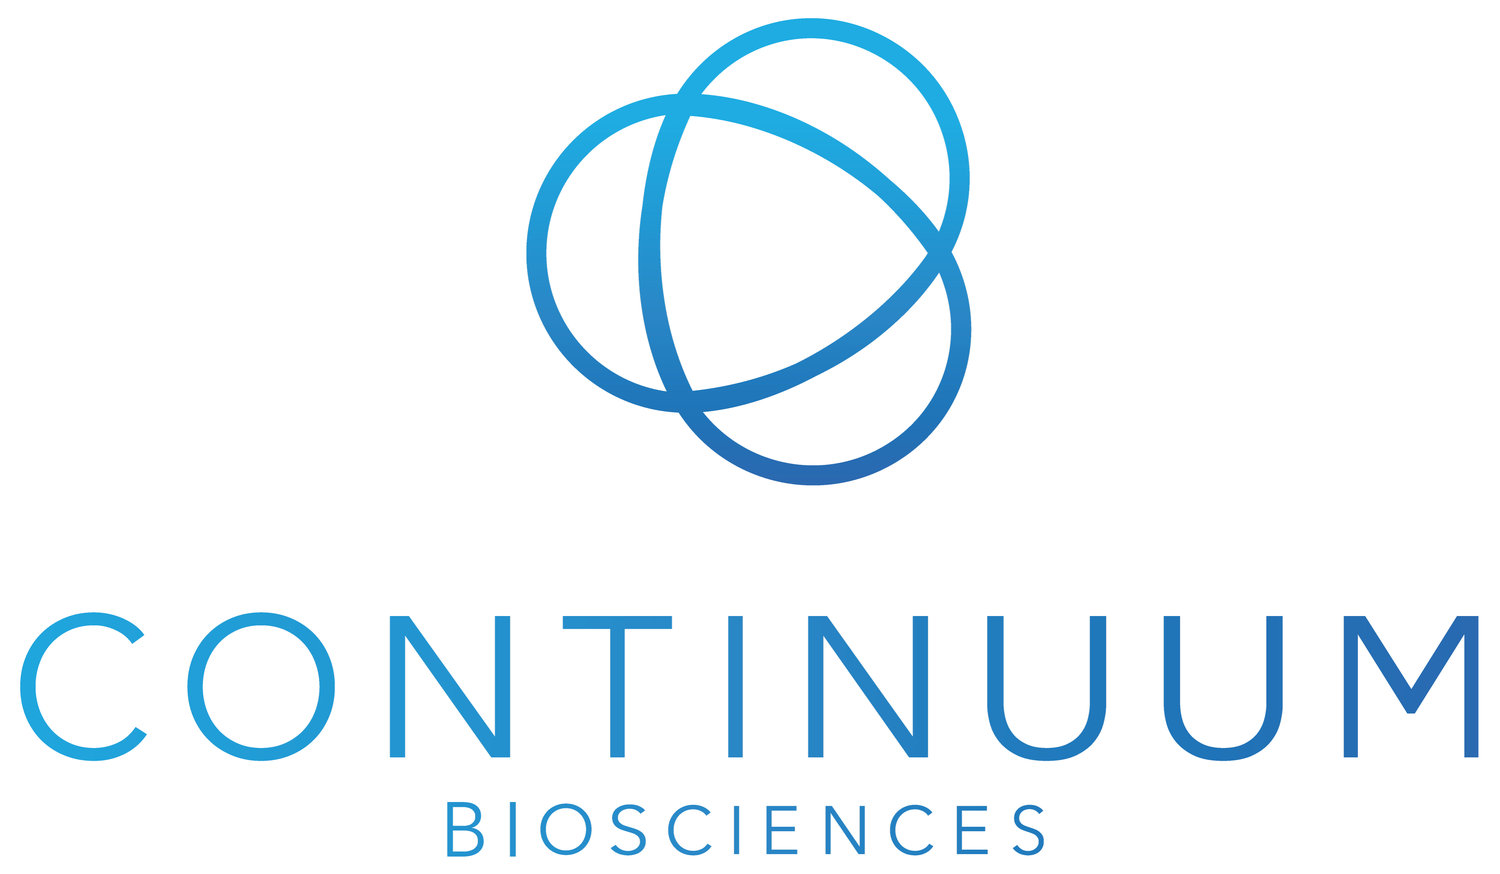 Continuum Biosciences